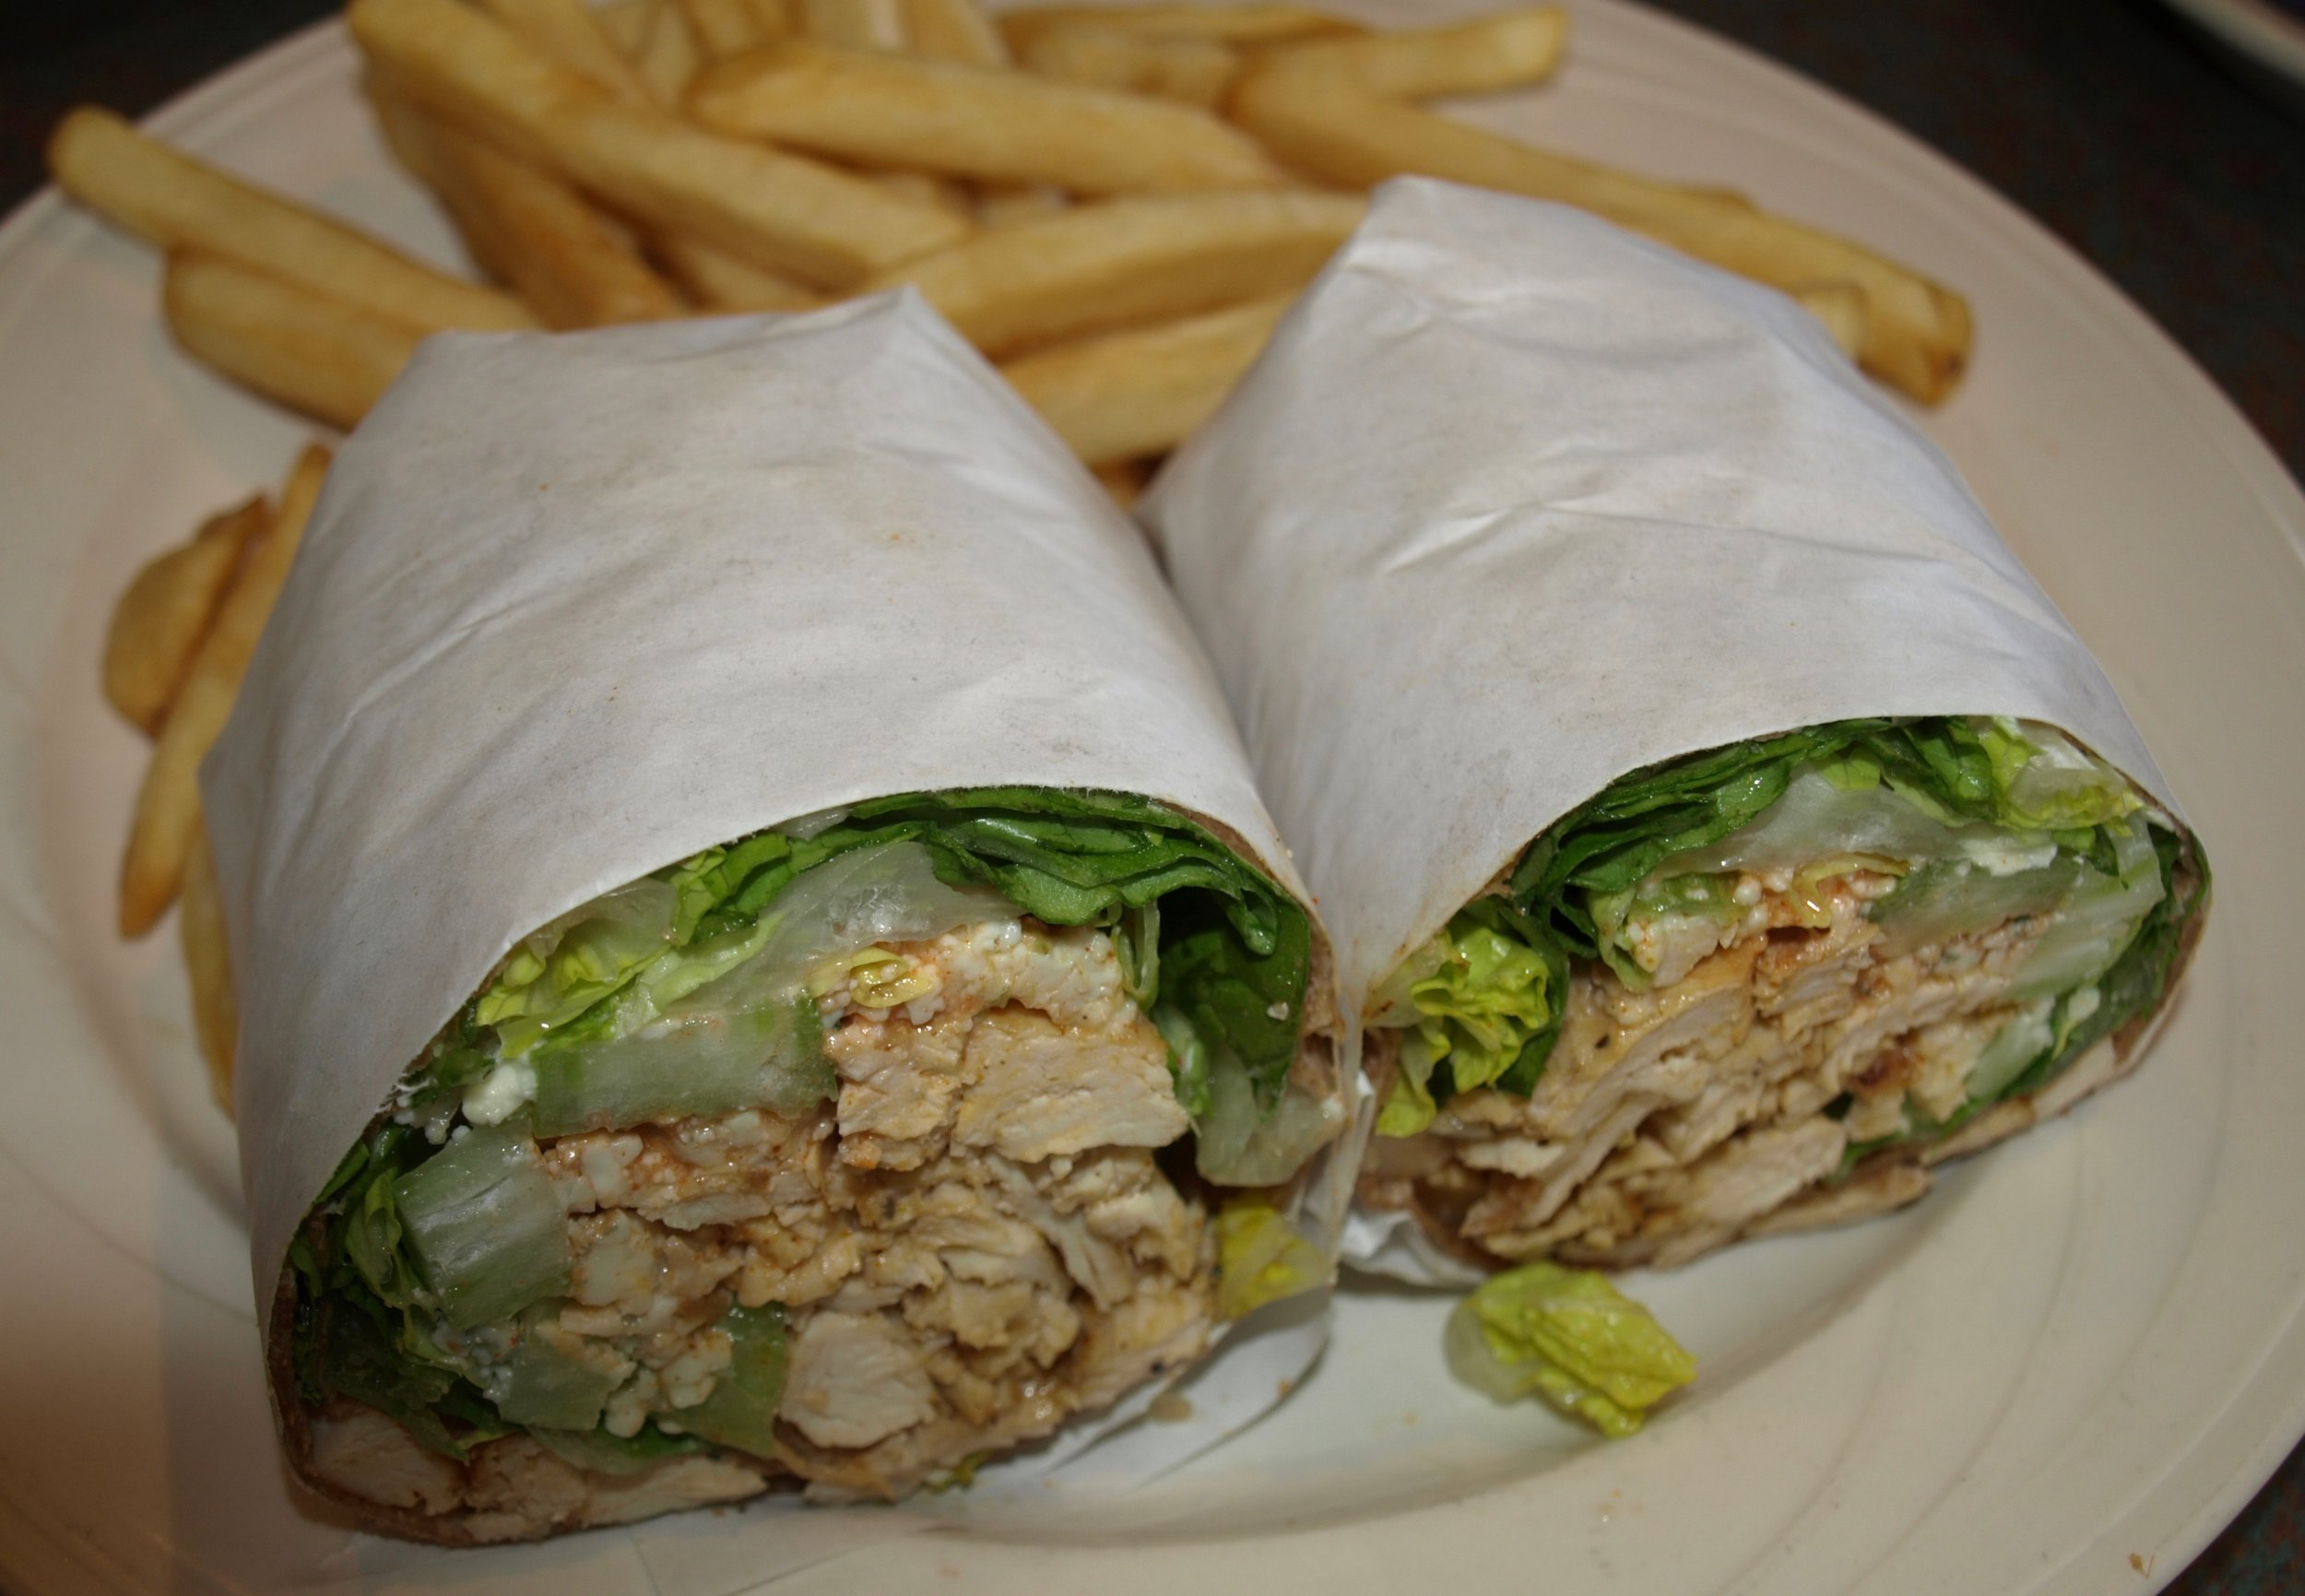 Buffalo Chicken Wrap marries spicy chicken and bleu cheese dressing.